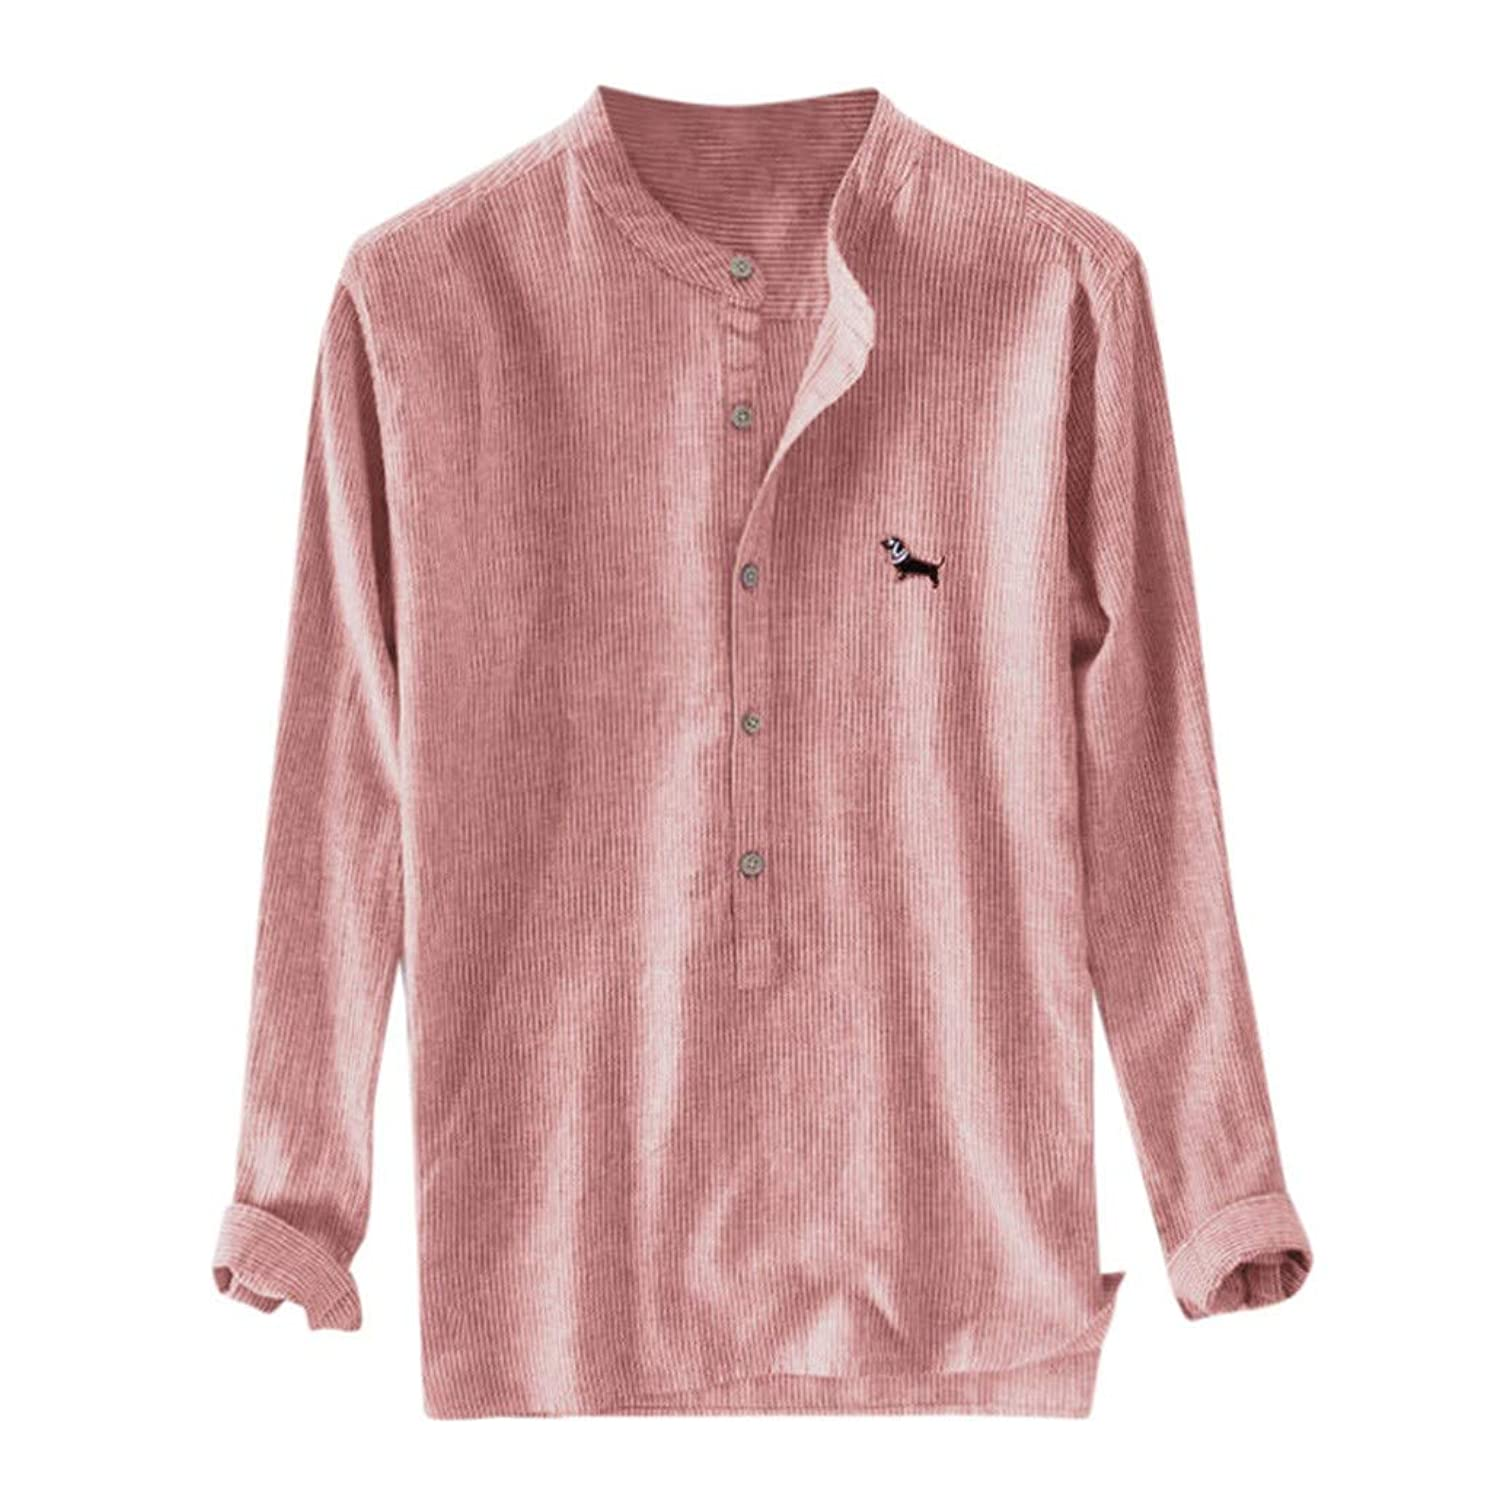 Men Shirts, Mens Striped Stand Collar Cotton Linen Embroidered Shirts Long Sleeve Casual Henley T-Shirt Top